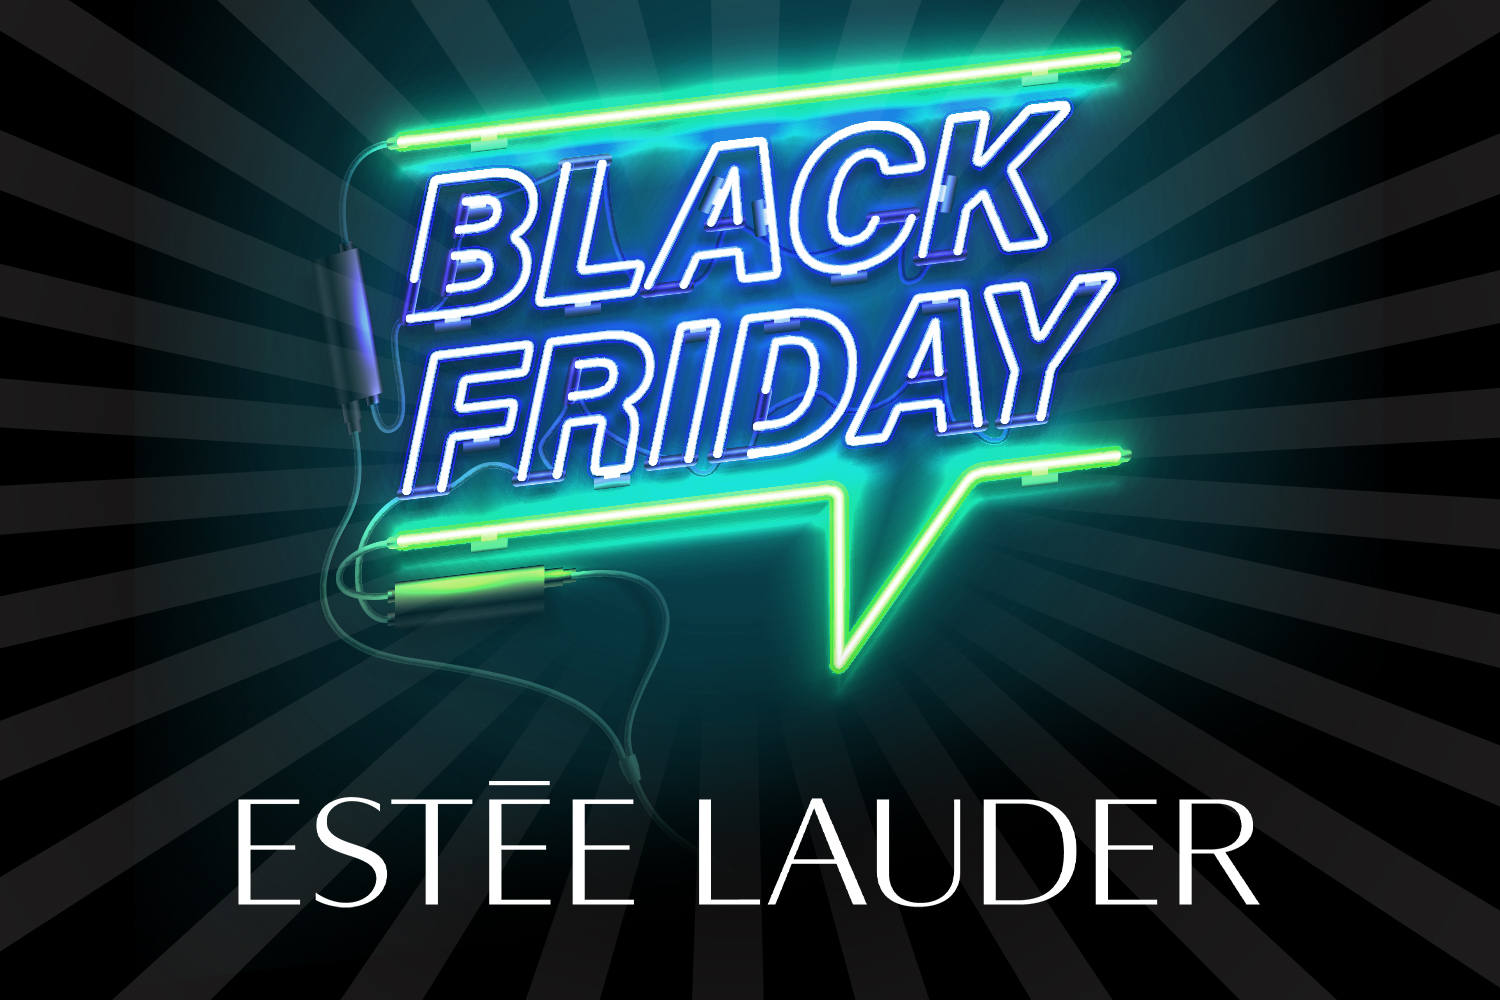 Beauty fans are anticipating some Estée Lauder bargains at this year's Black Friday event